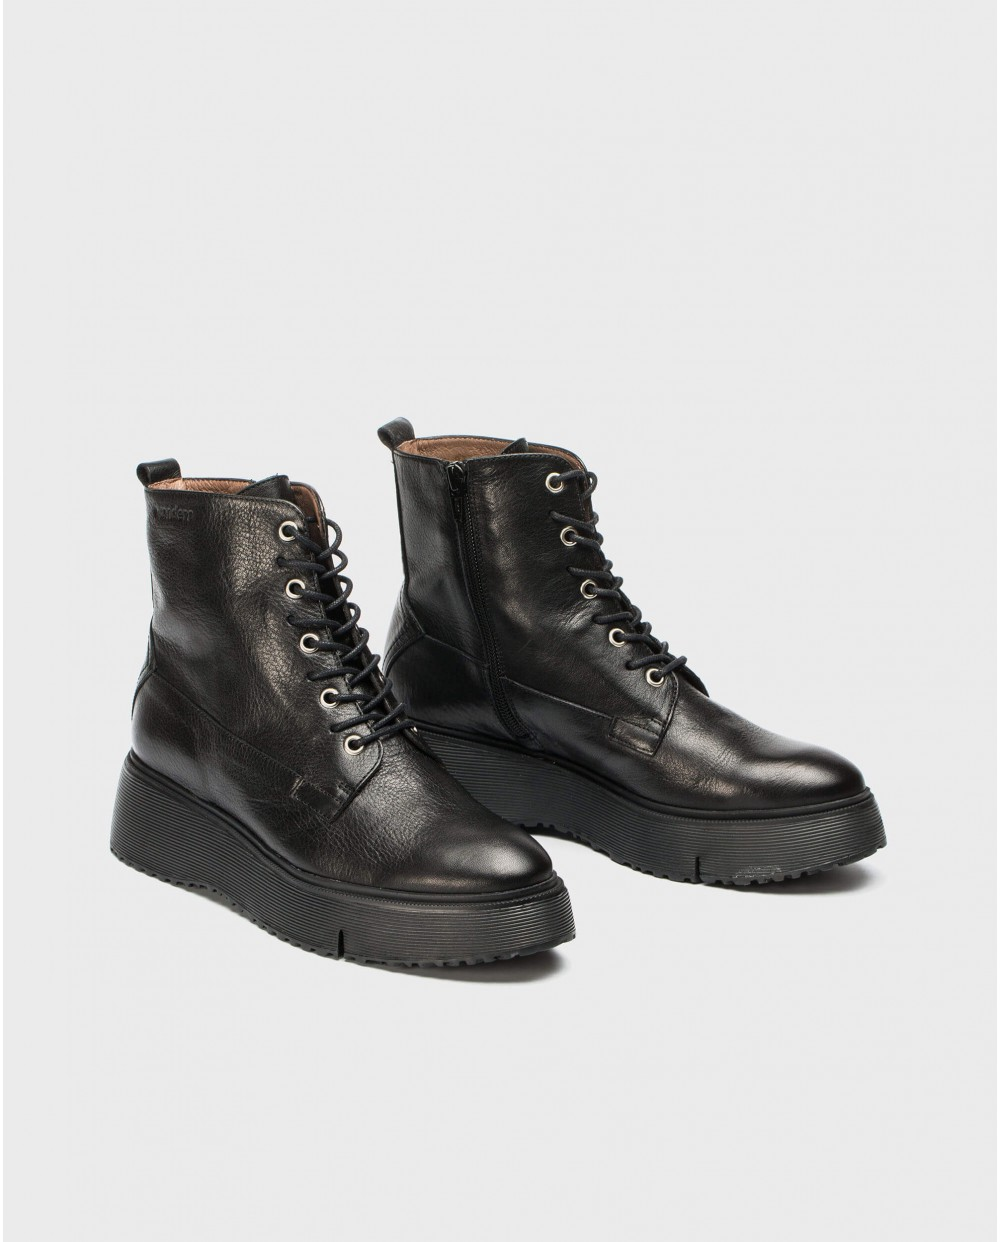 Wonders-Ankle Boots-Ankle boot with laces